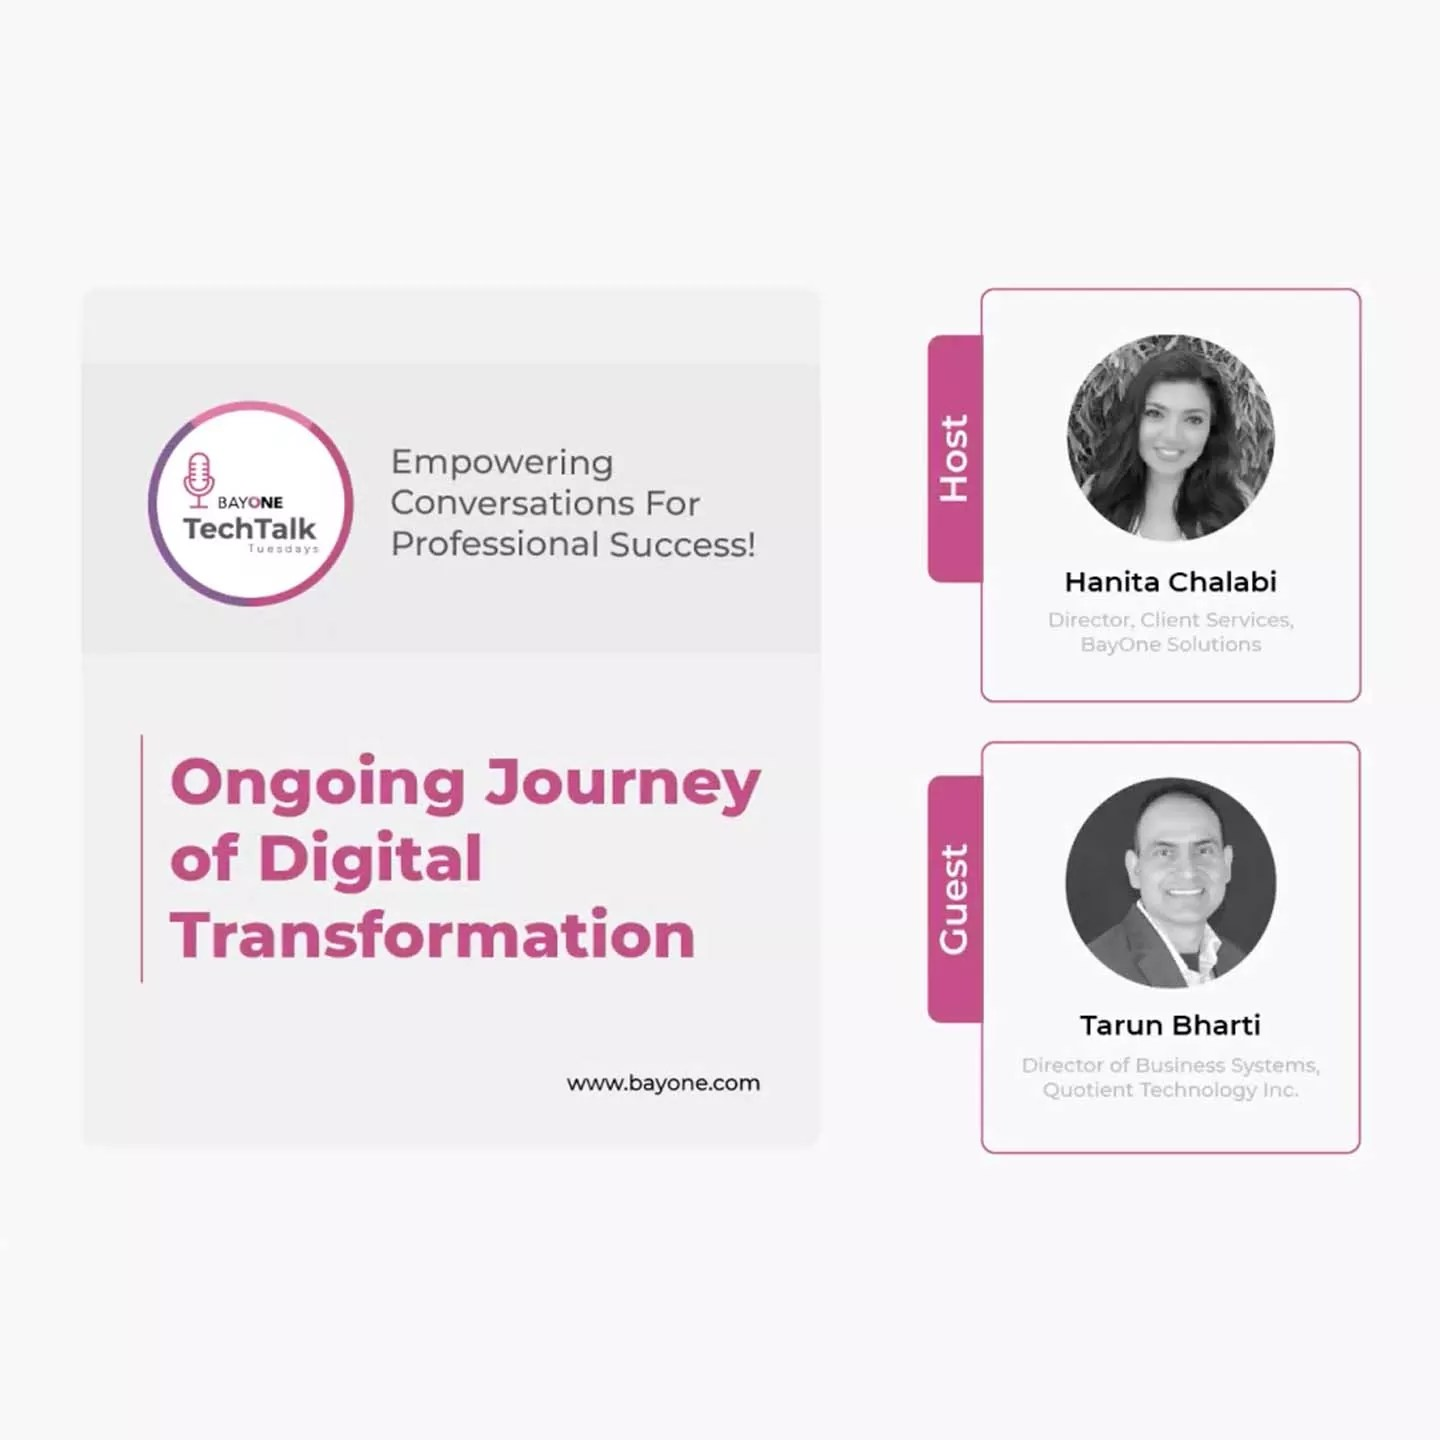 Ongoing Journey of Digital Transformation